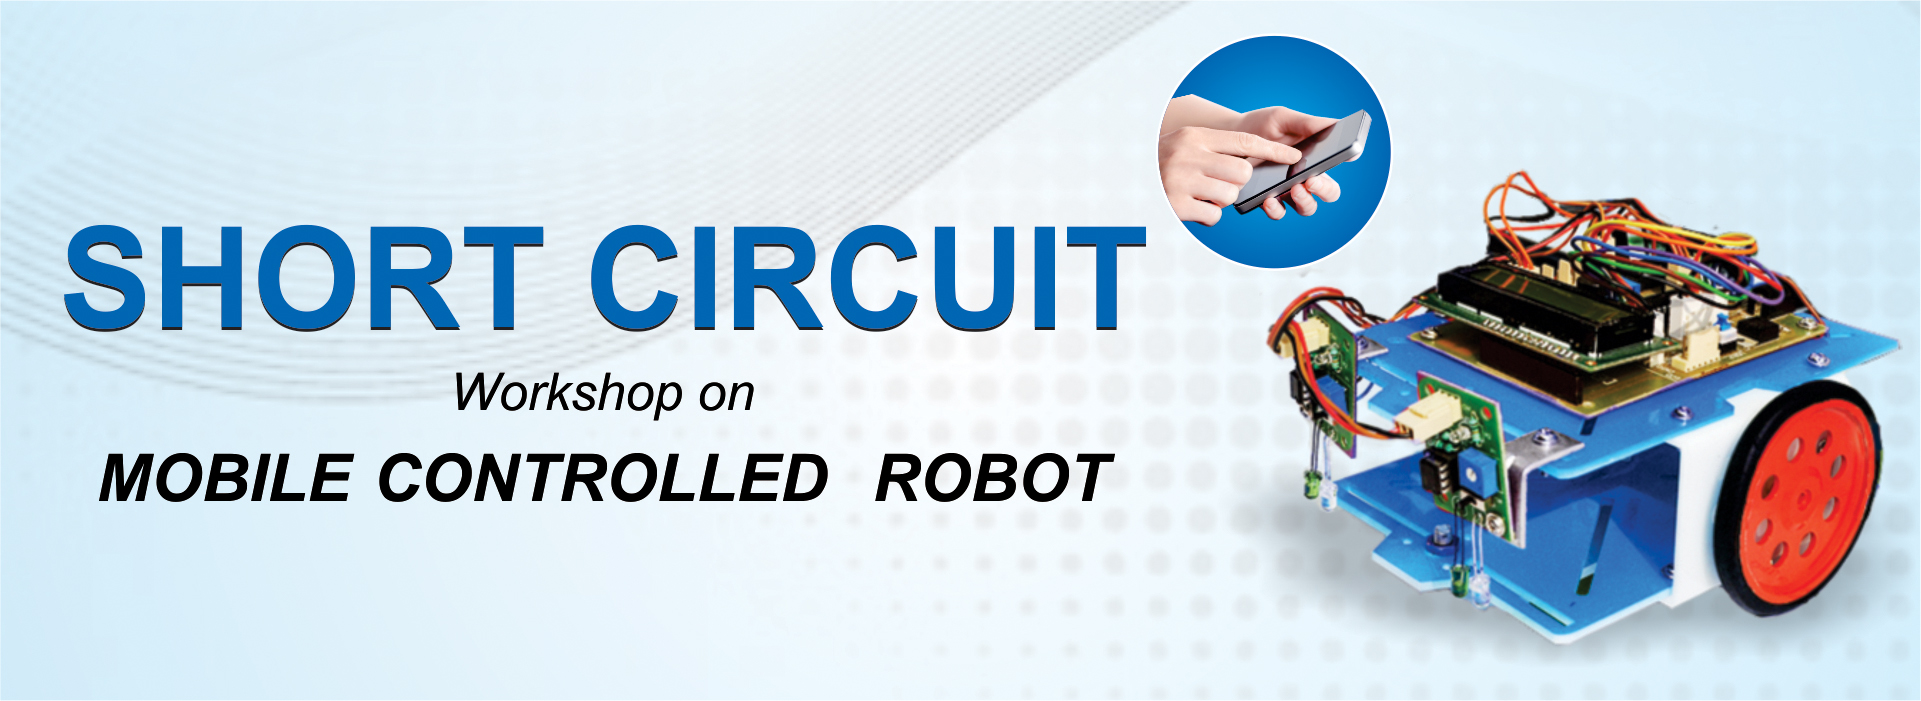 Short Circuit Workshop On Mobile Controlled Robot I3indya Design Robotics Is For All Technologies Workshops Training Rd Cell India